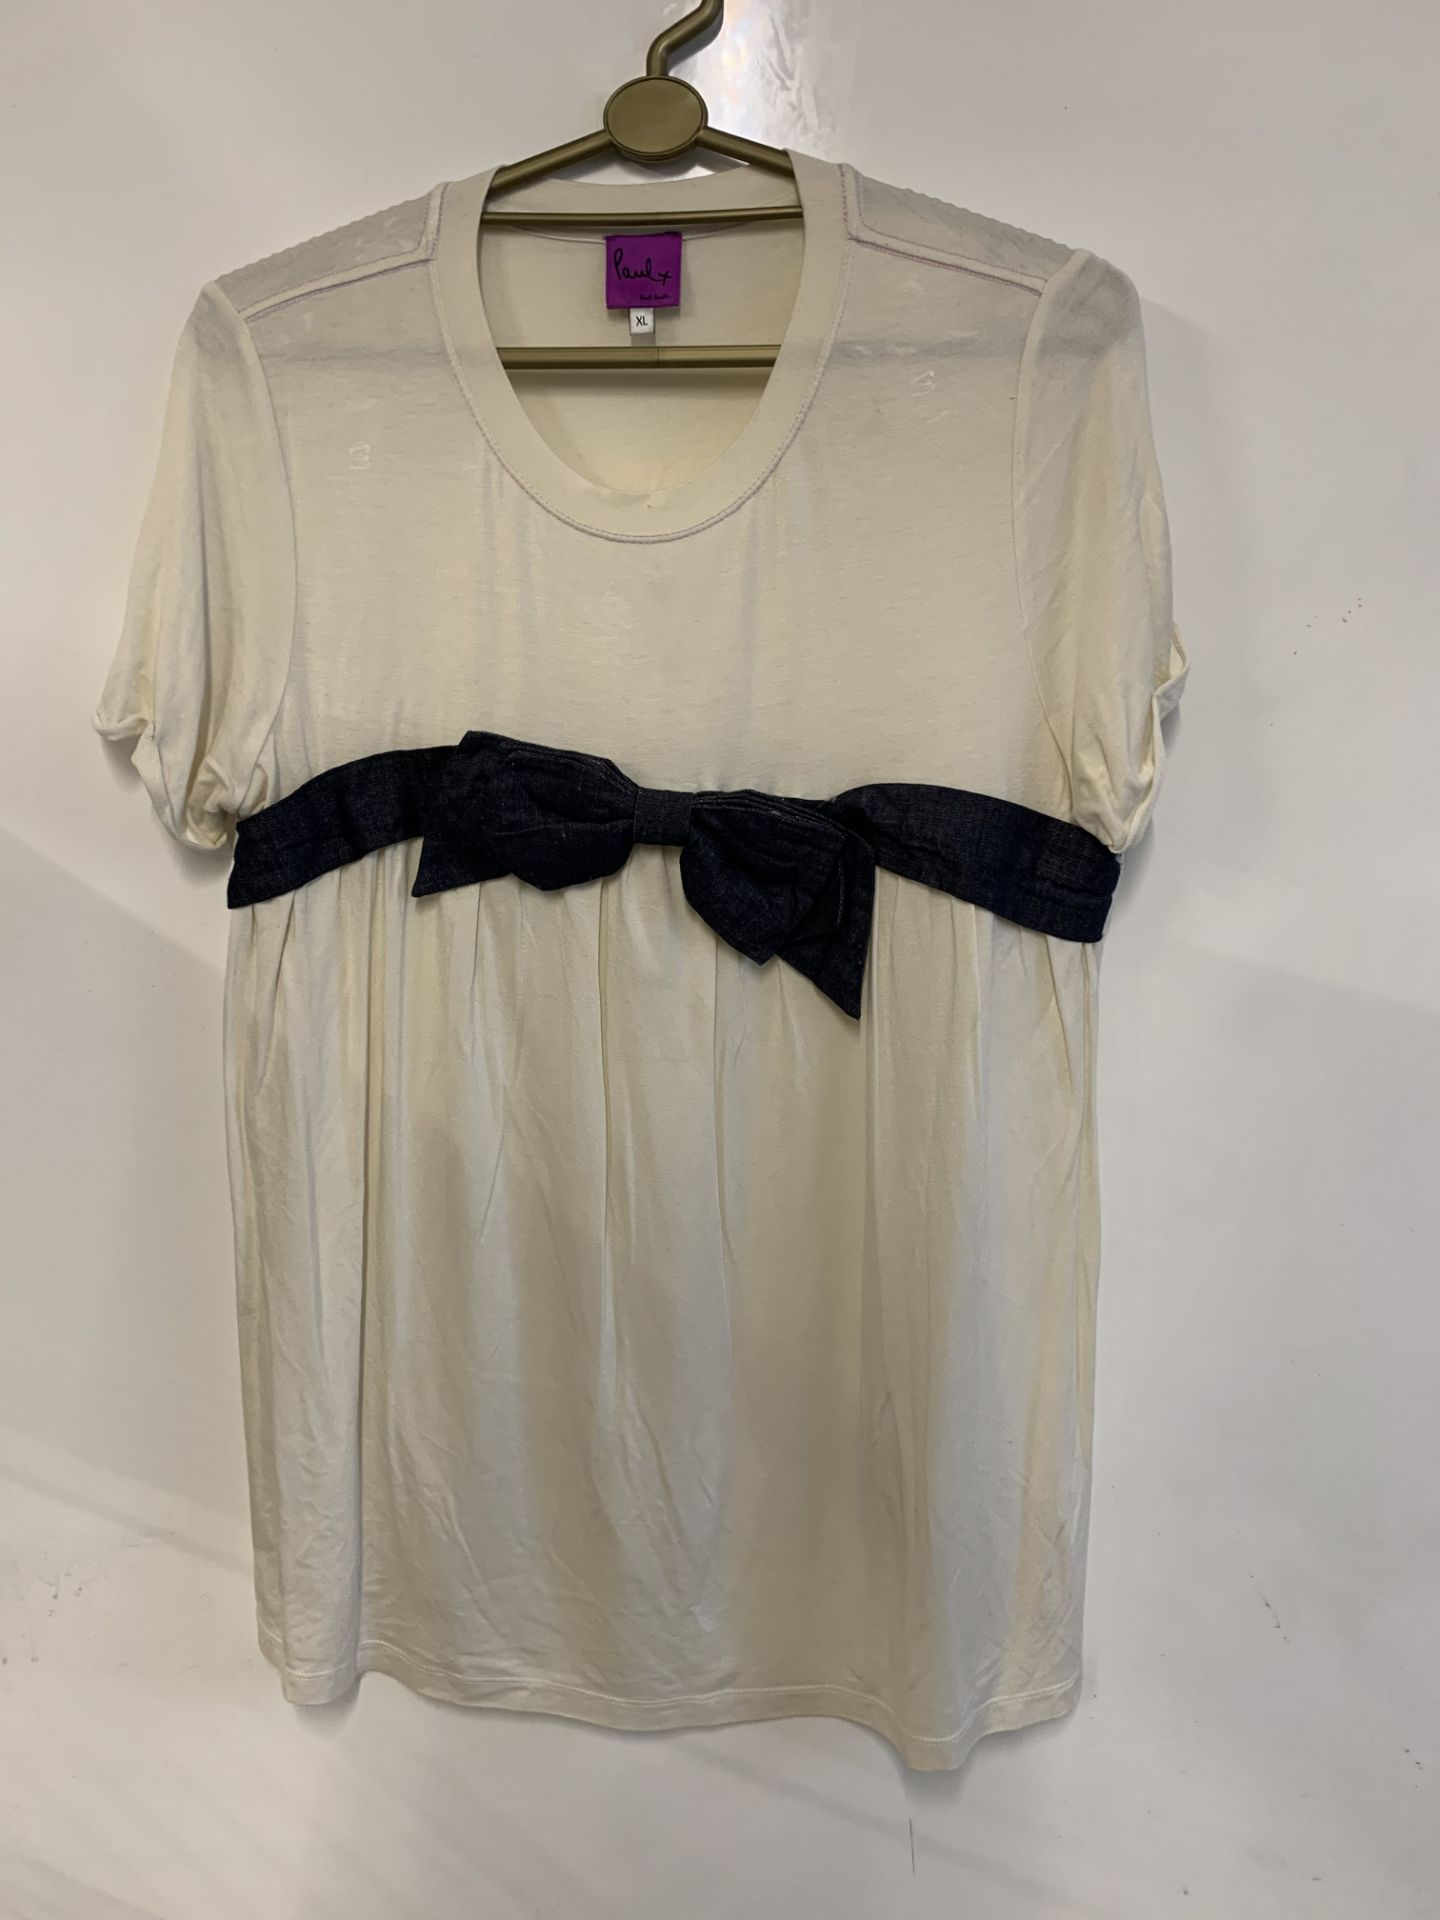 Lot 41 - Paul smith short sleeved T Shirt